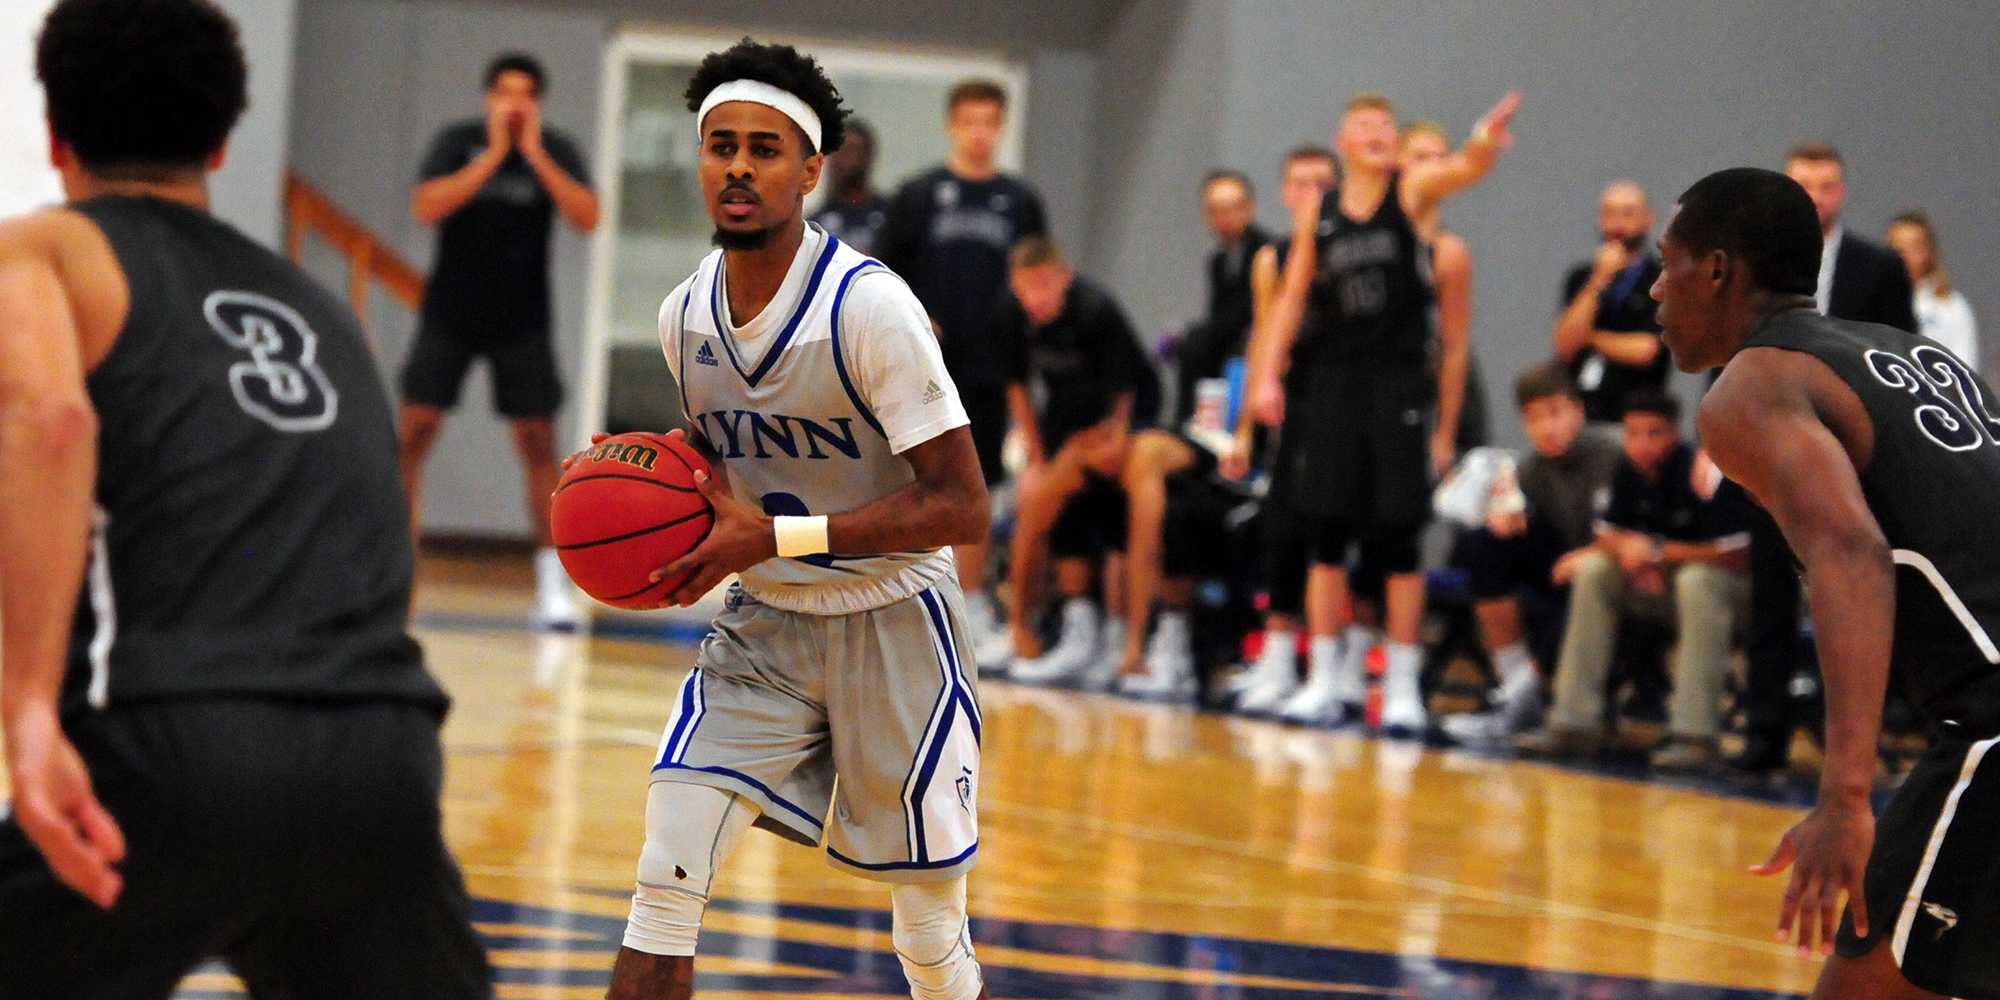 Men's Basketball Fights off Florida Tech for First League Victory